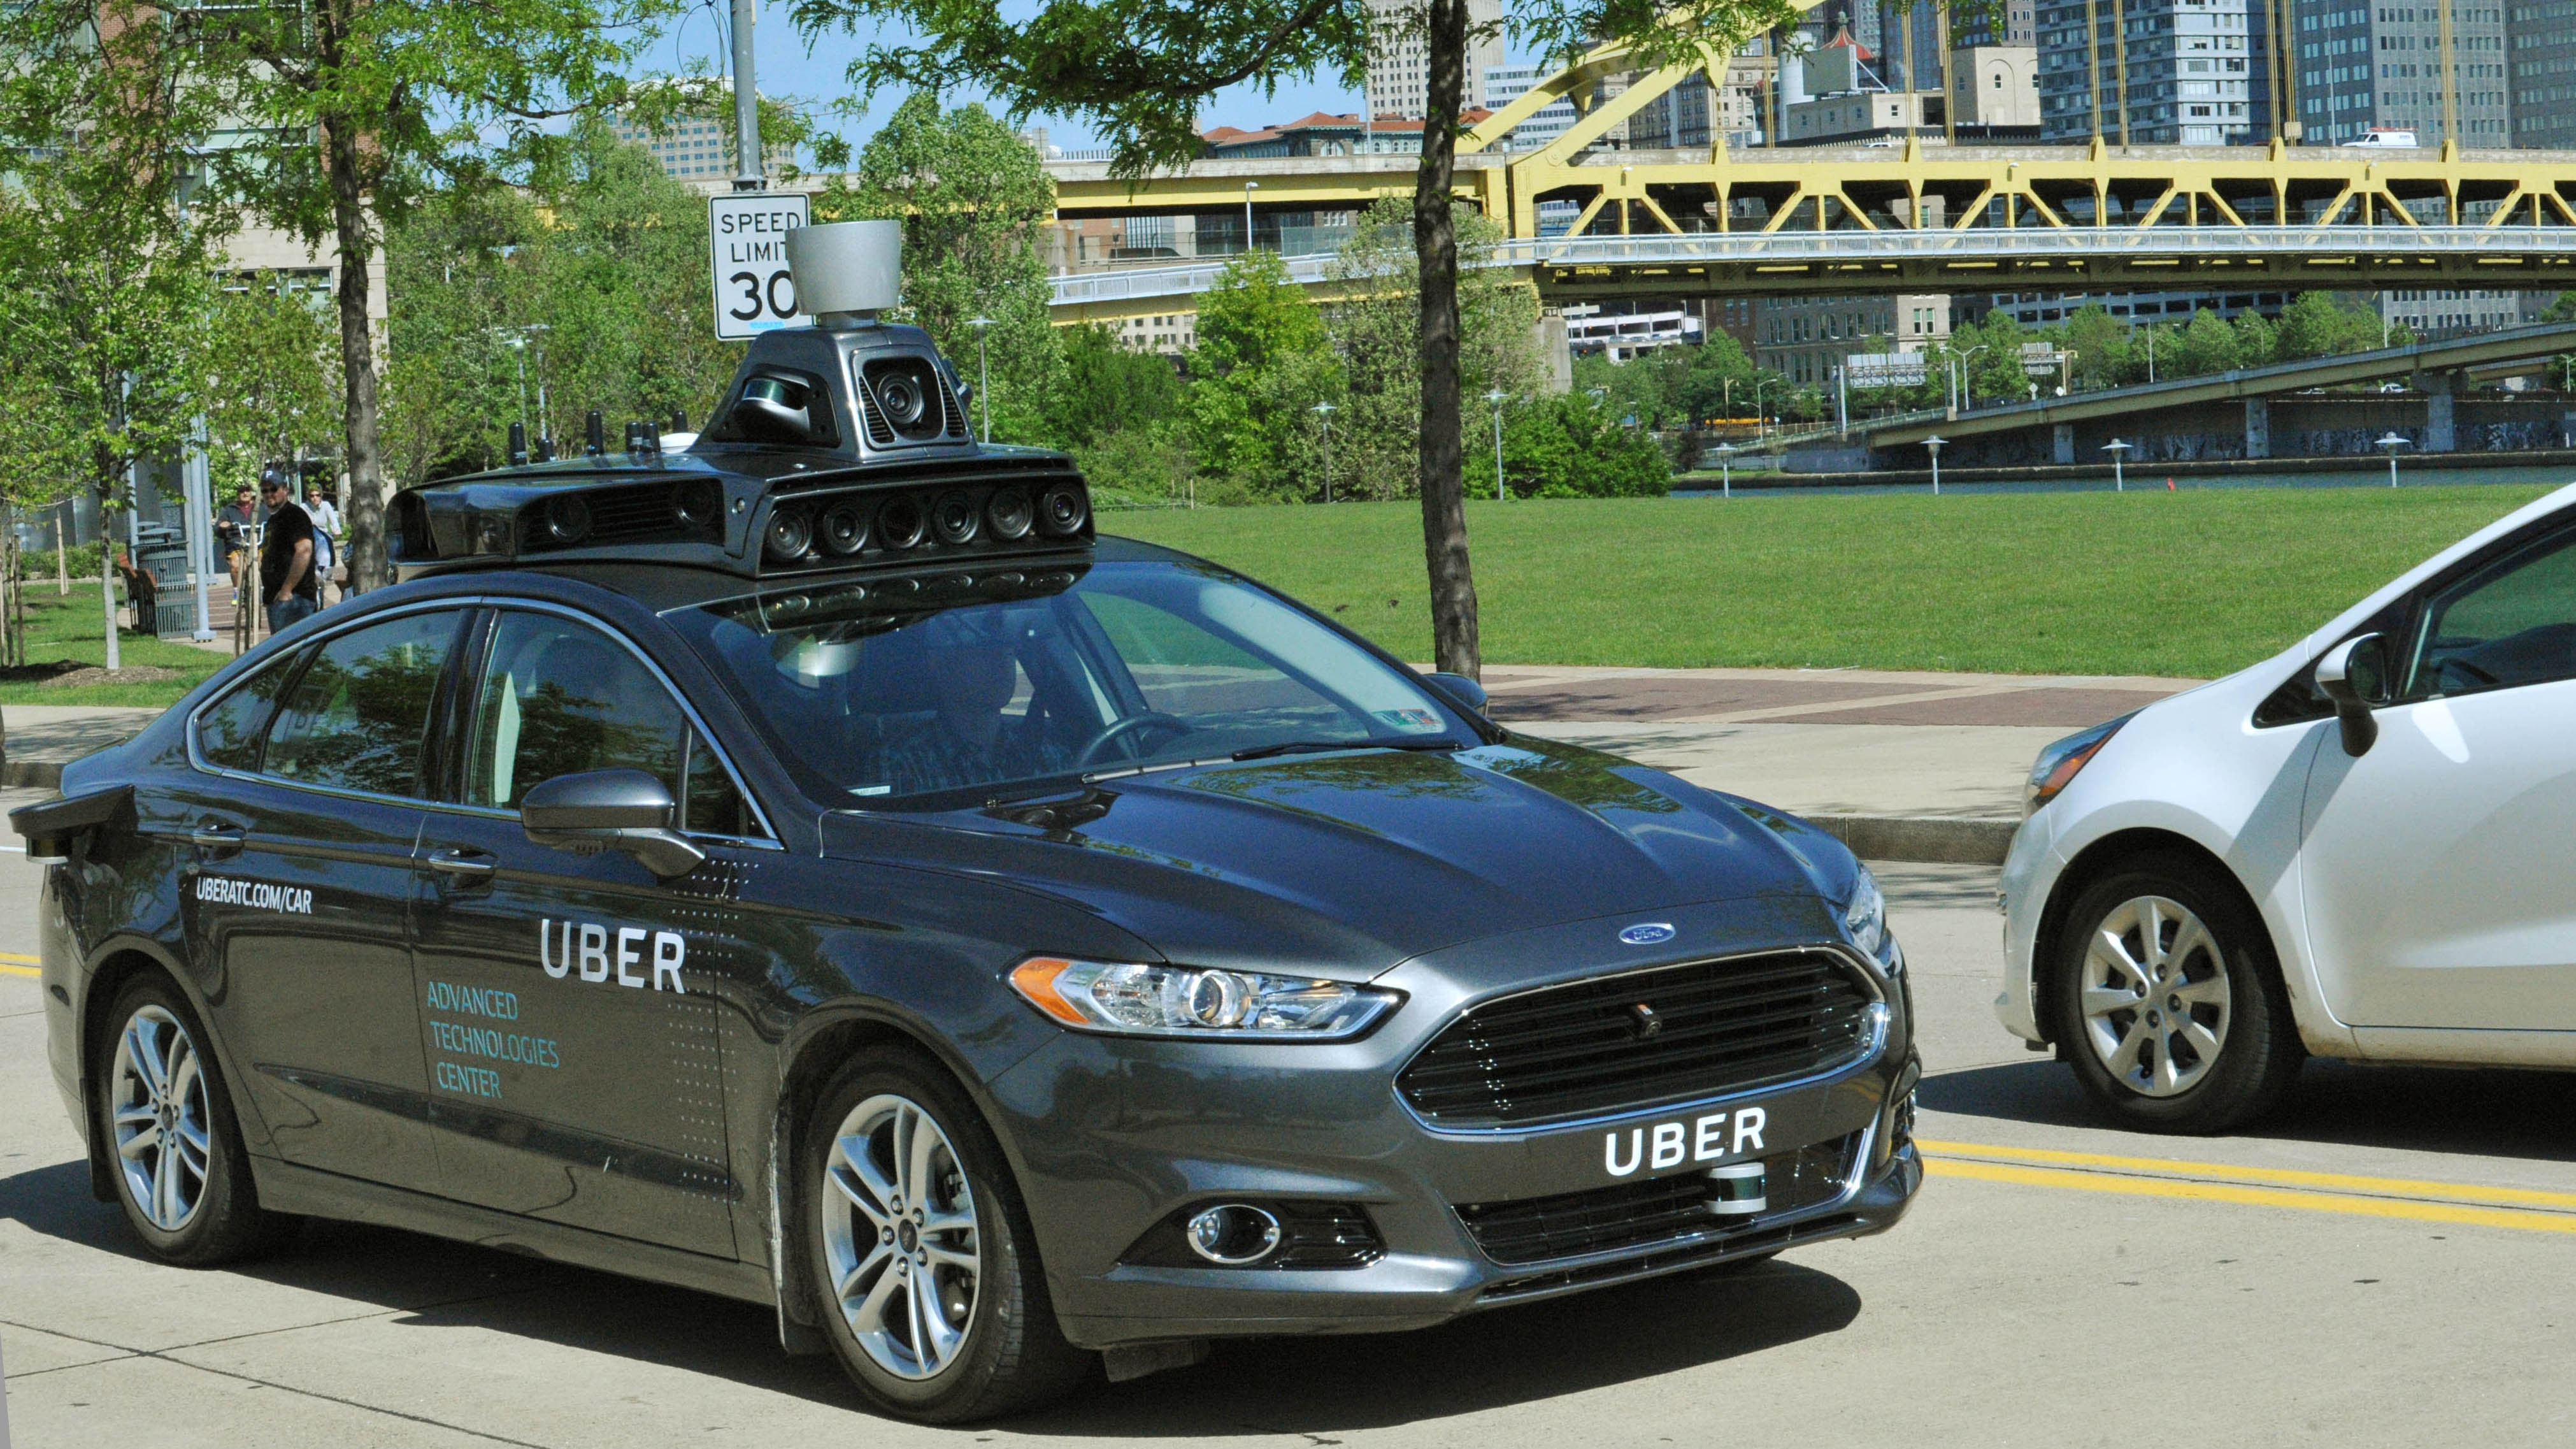 Uber redeploys autonomous cars in Pittsburgh, but under human control